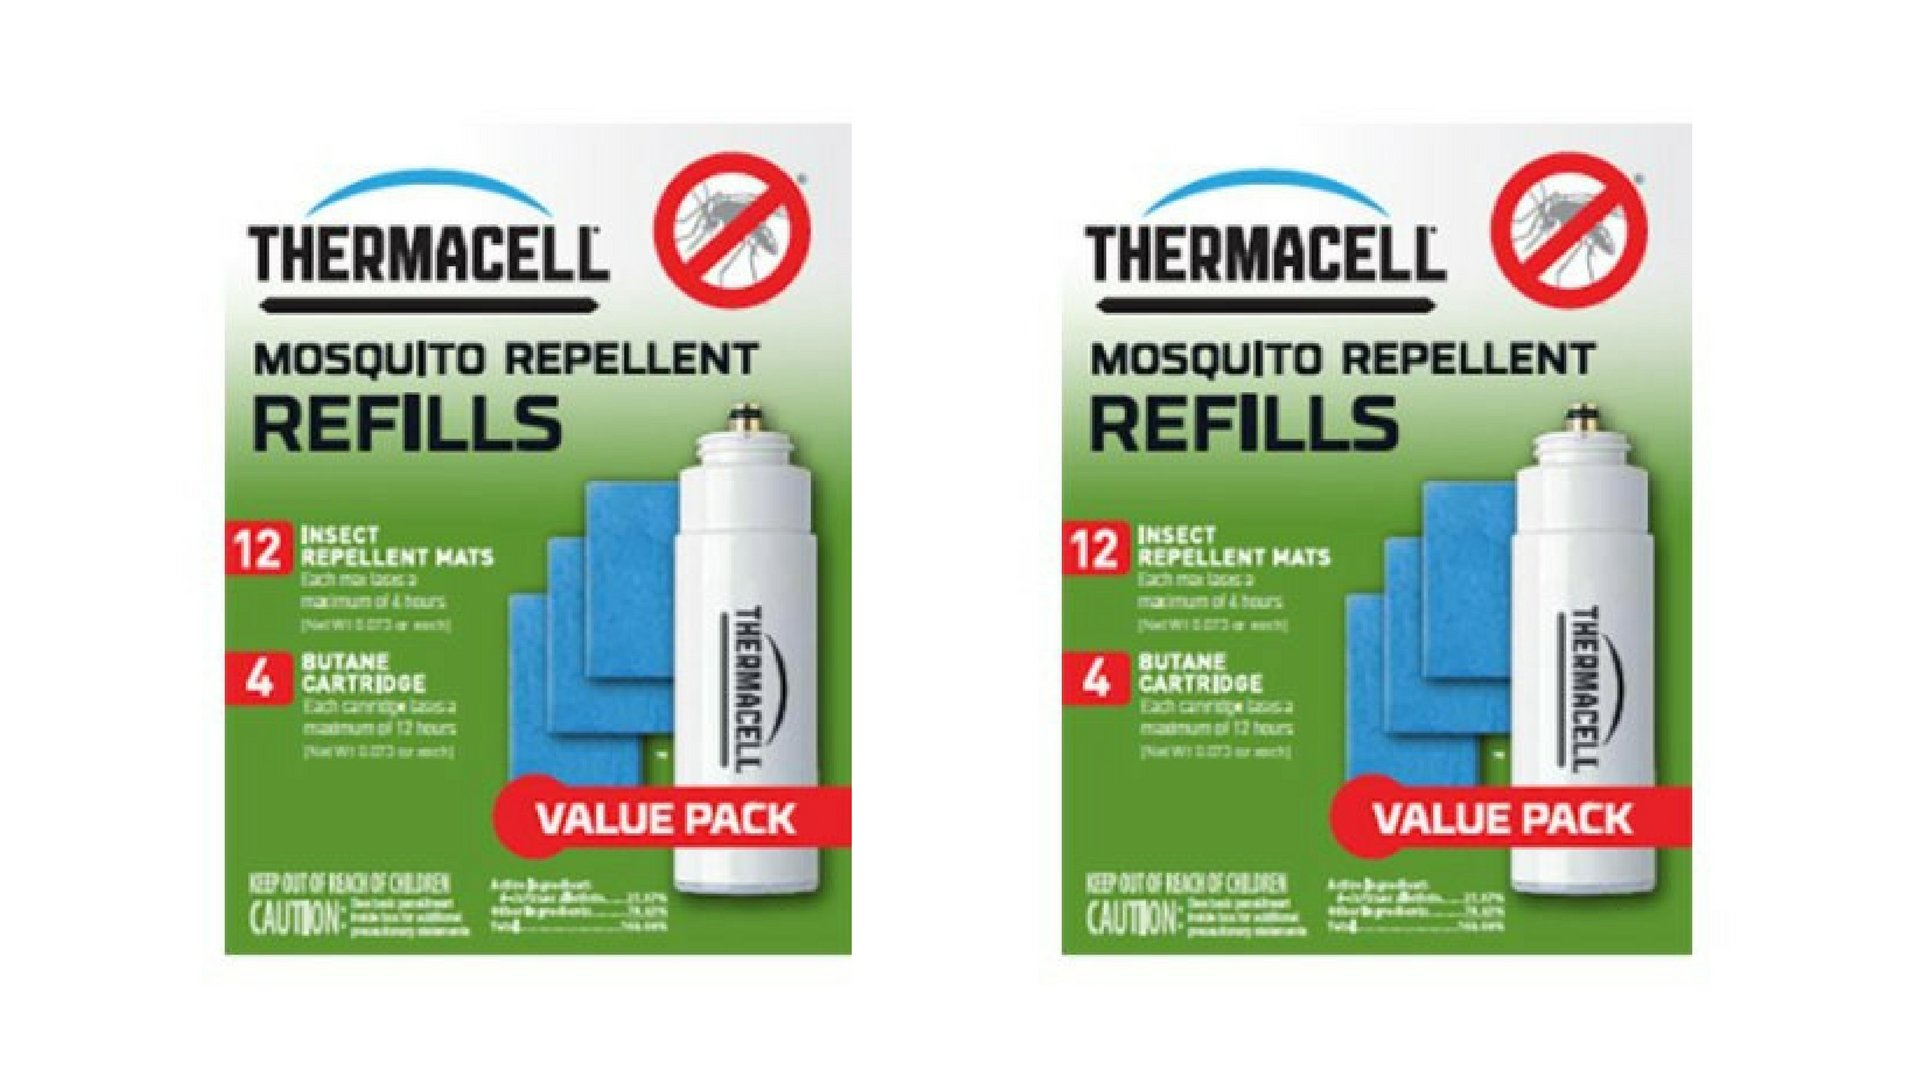 Thermacell Mosquito Repellent Refill Value Pack Set of 2, Bundle